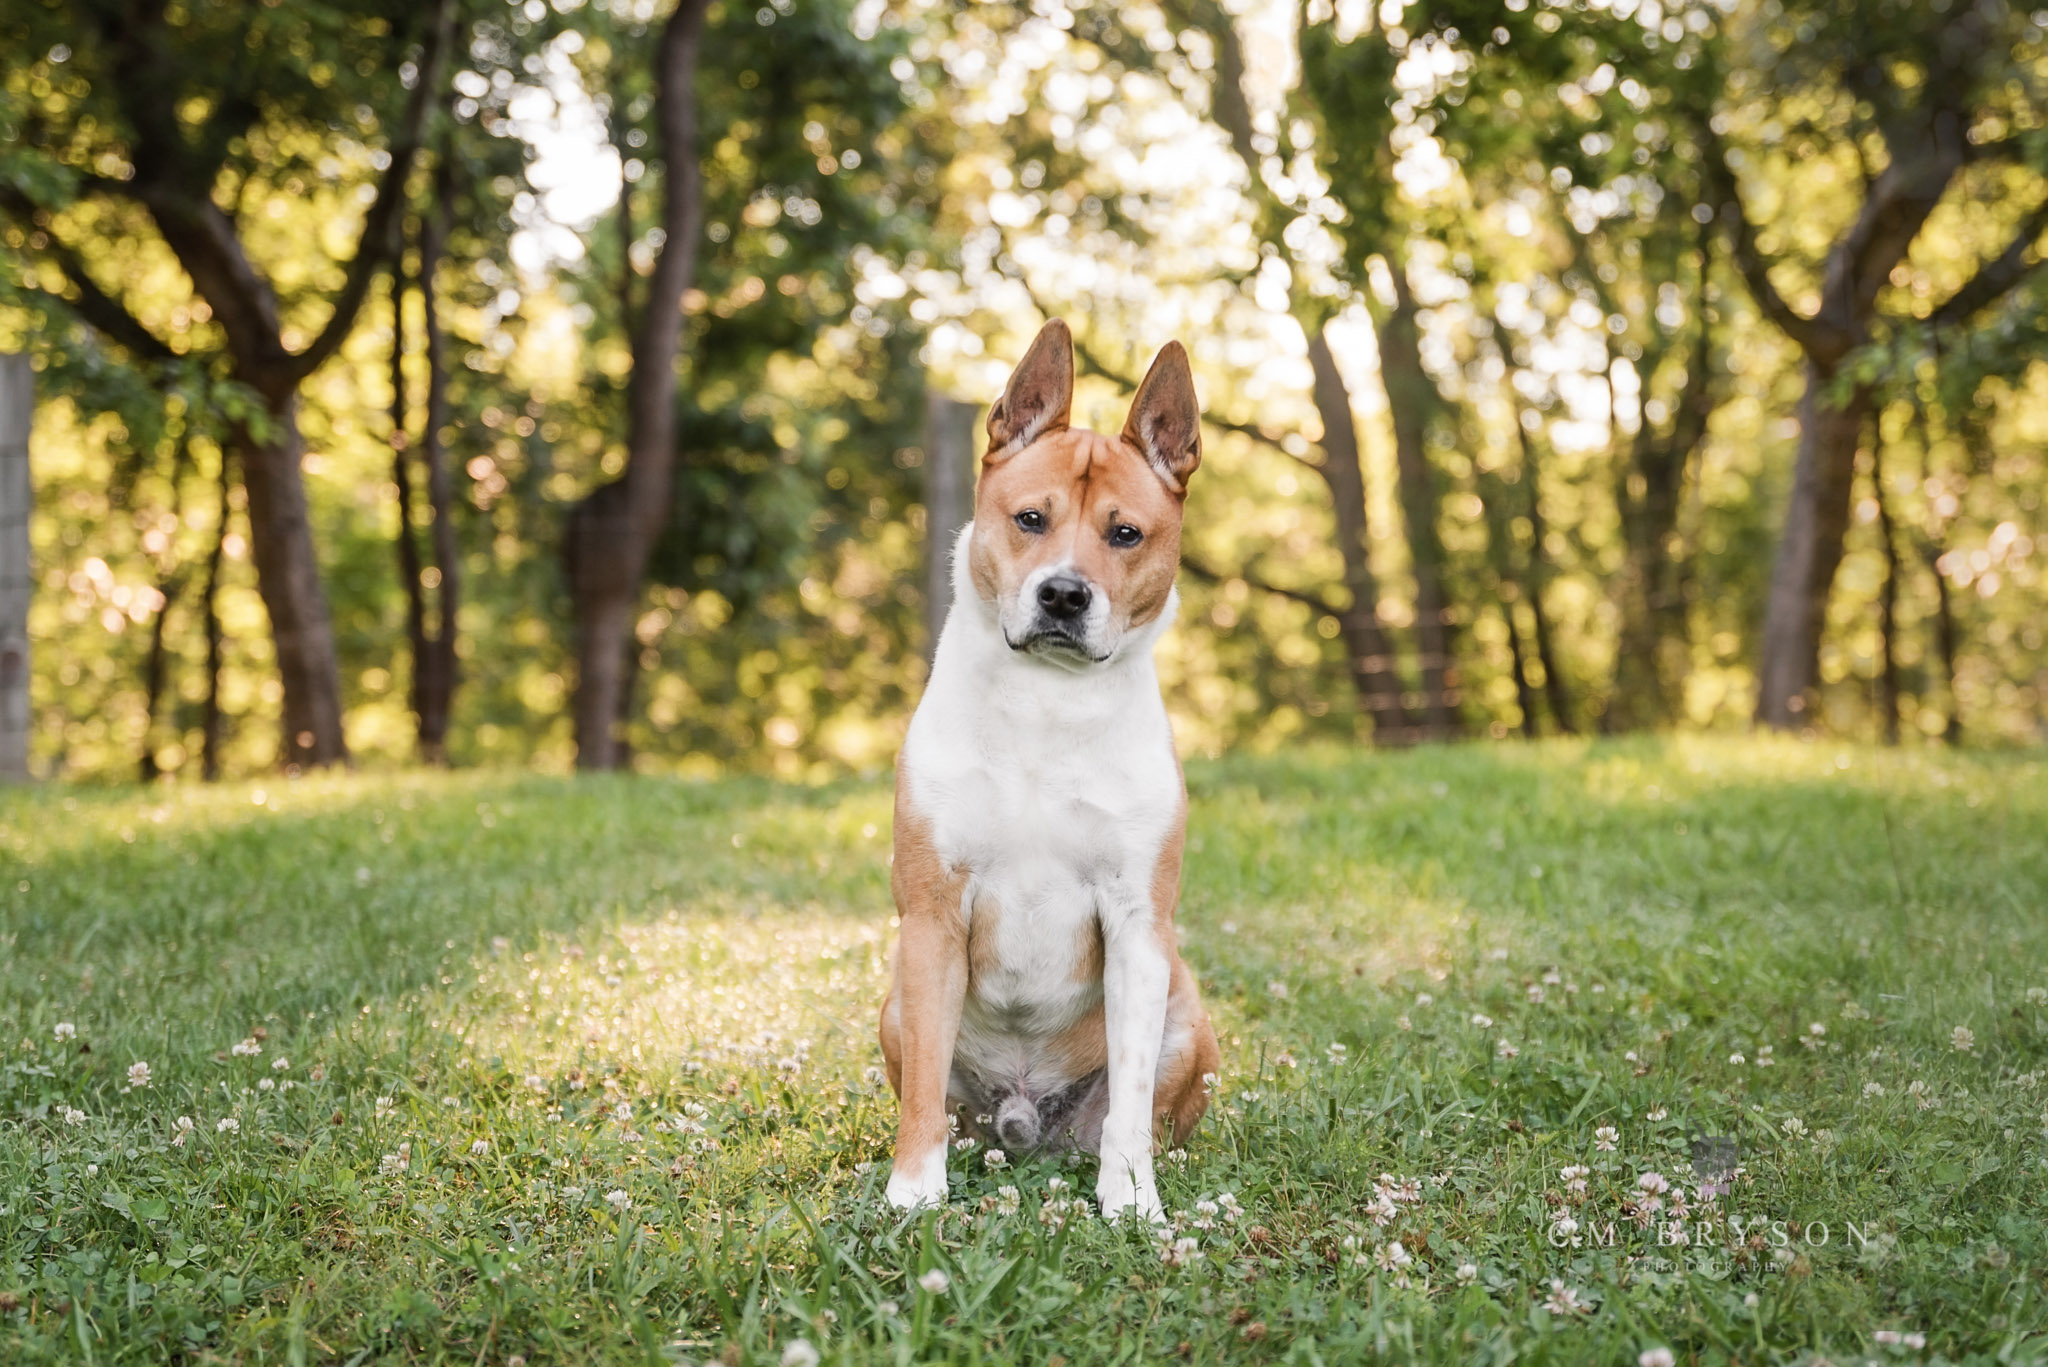 Pet photography is possible even with senior pets and dogs who need to stay on leash.